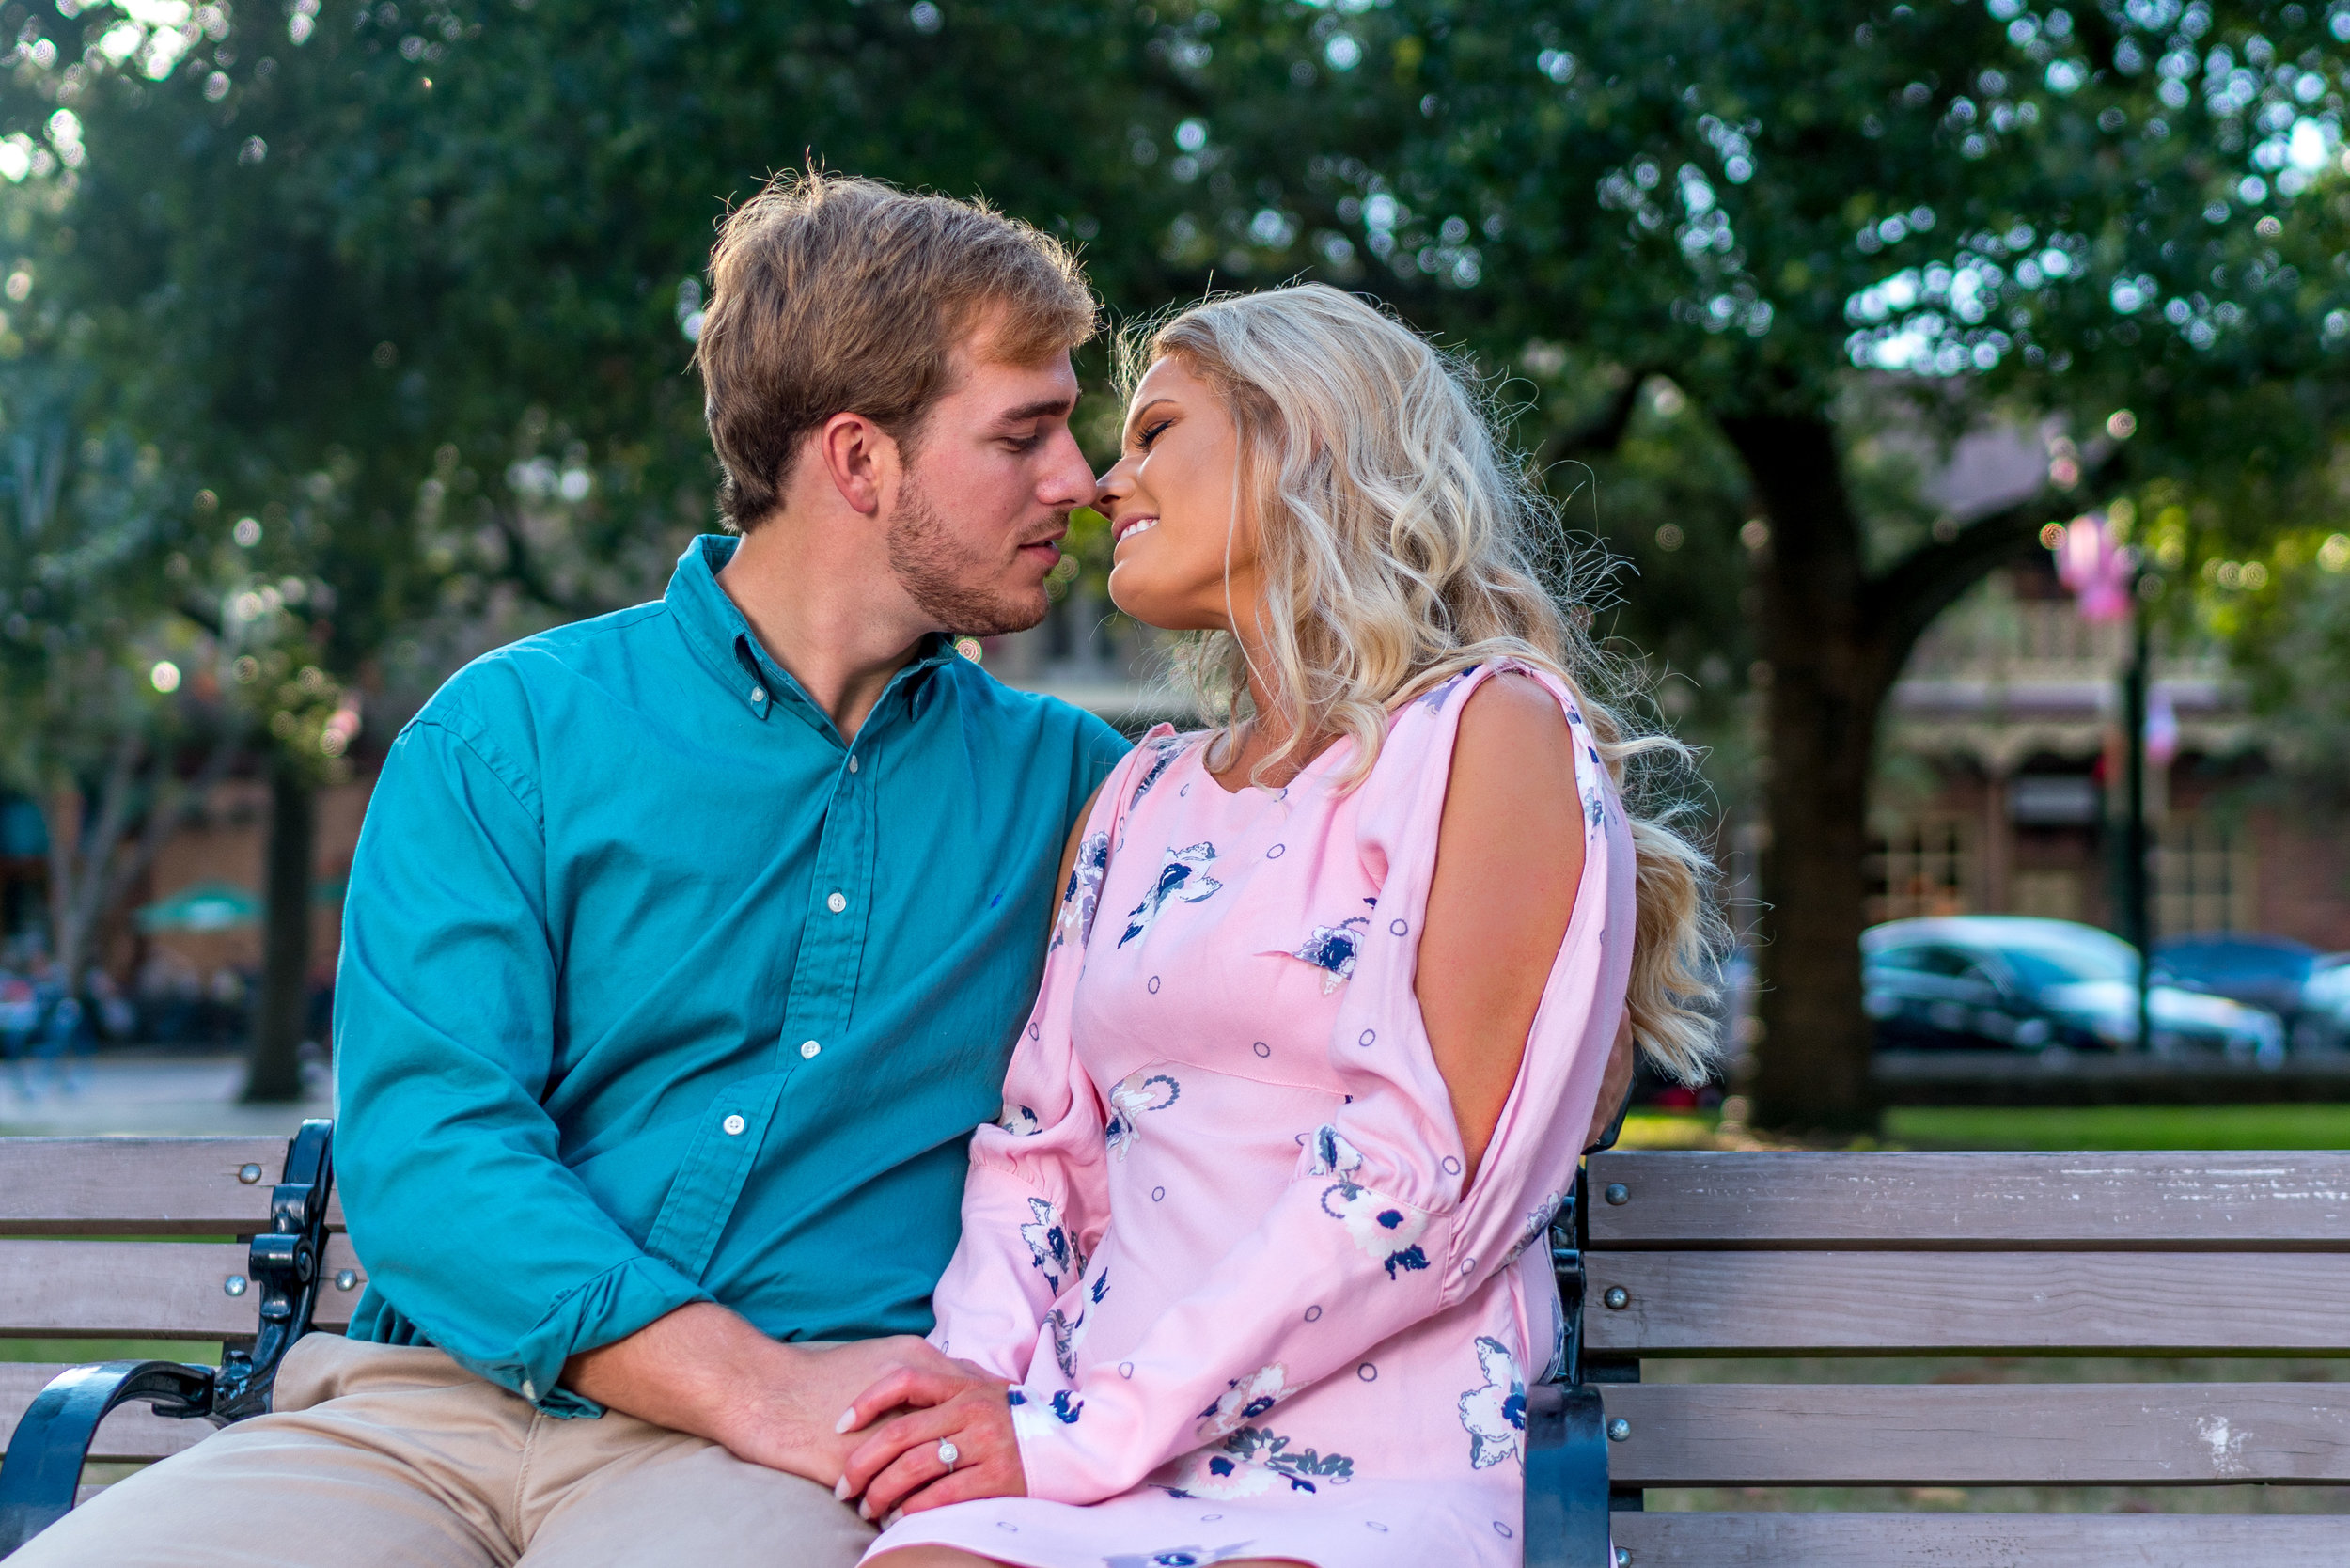 engagement-couple-bench-outside.jpg